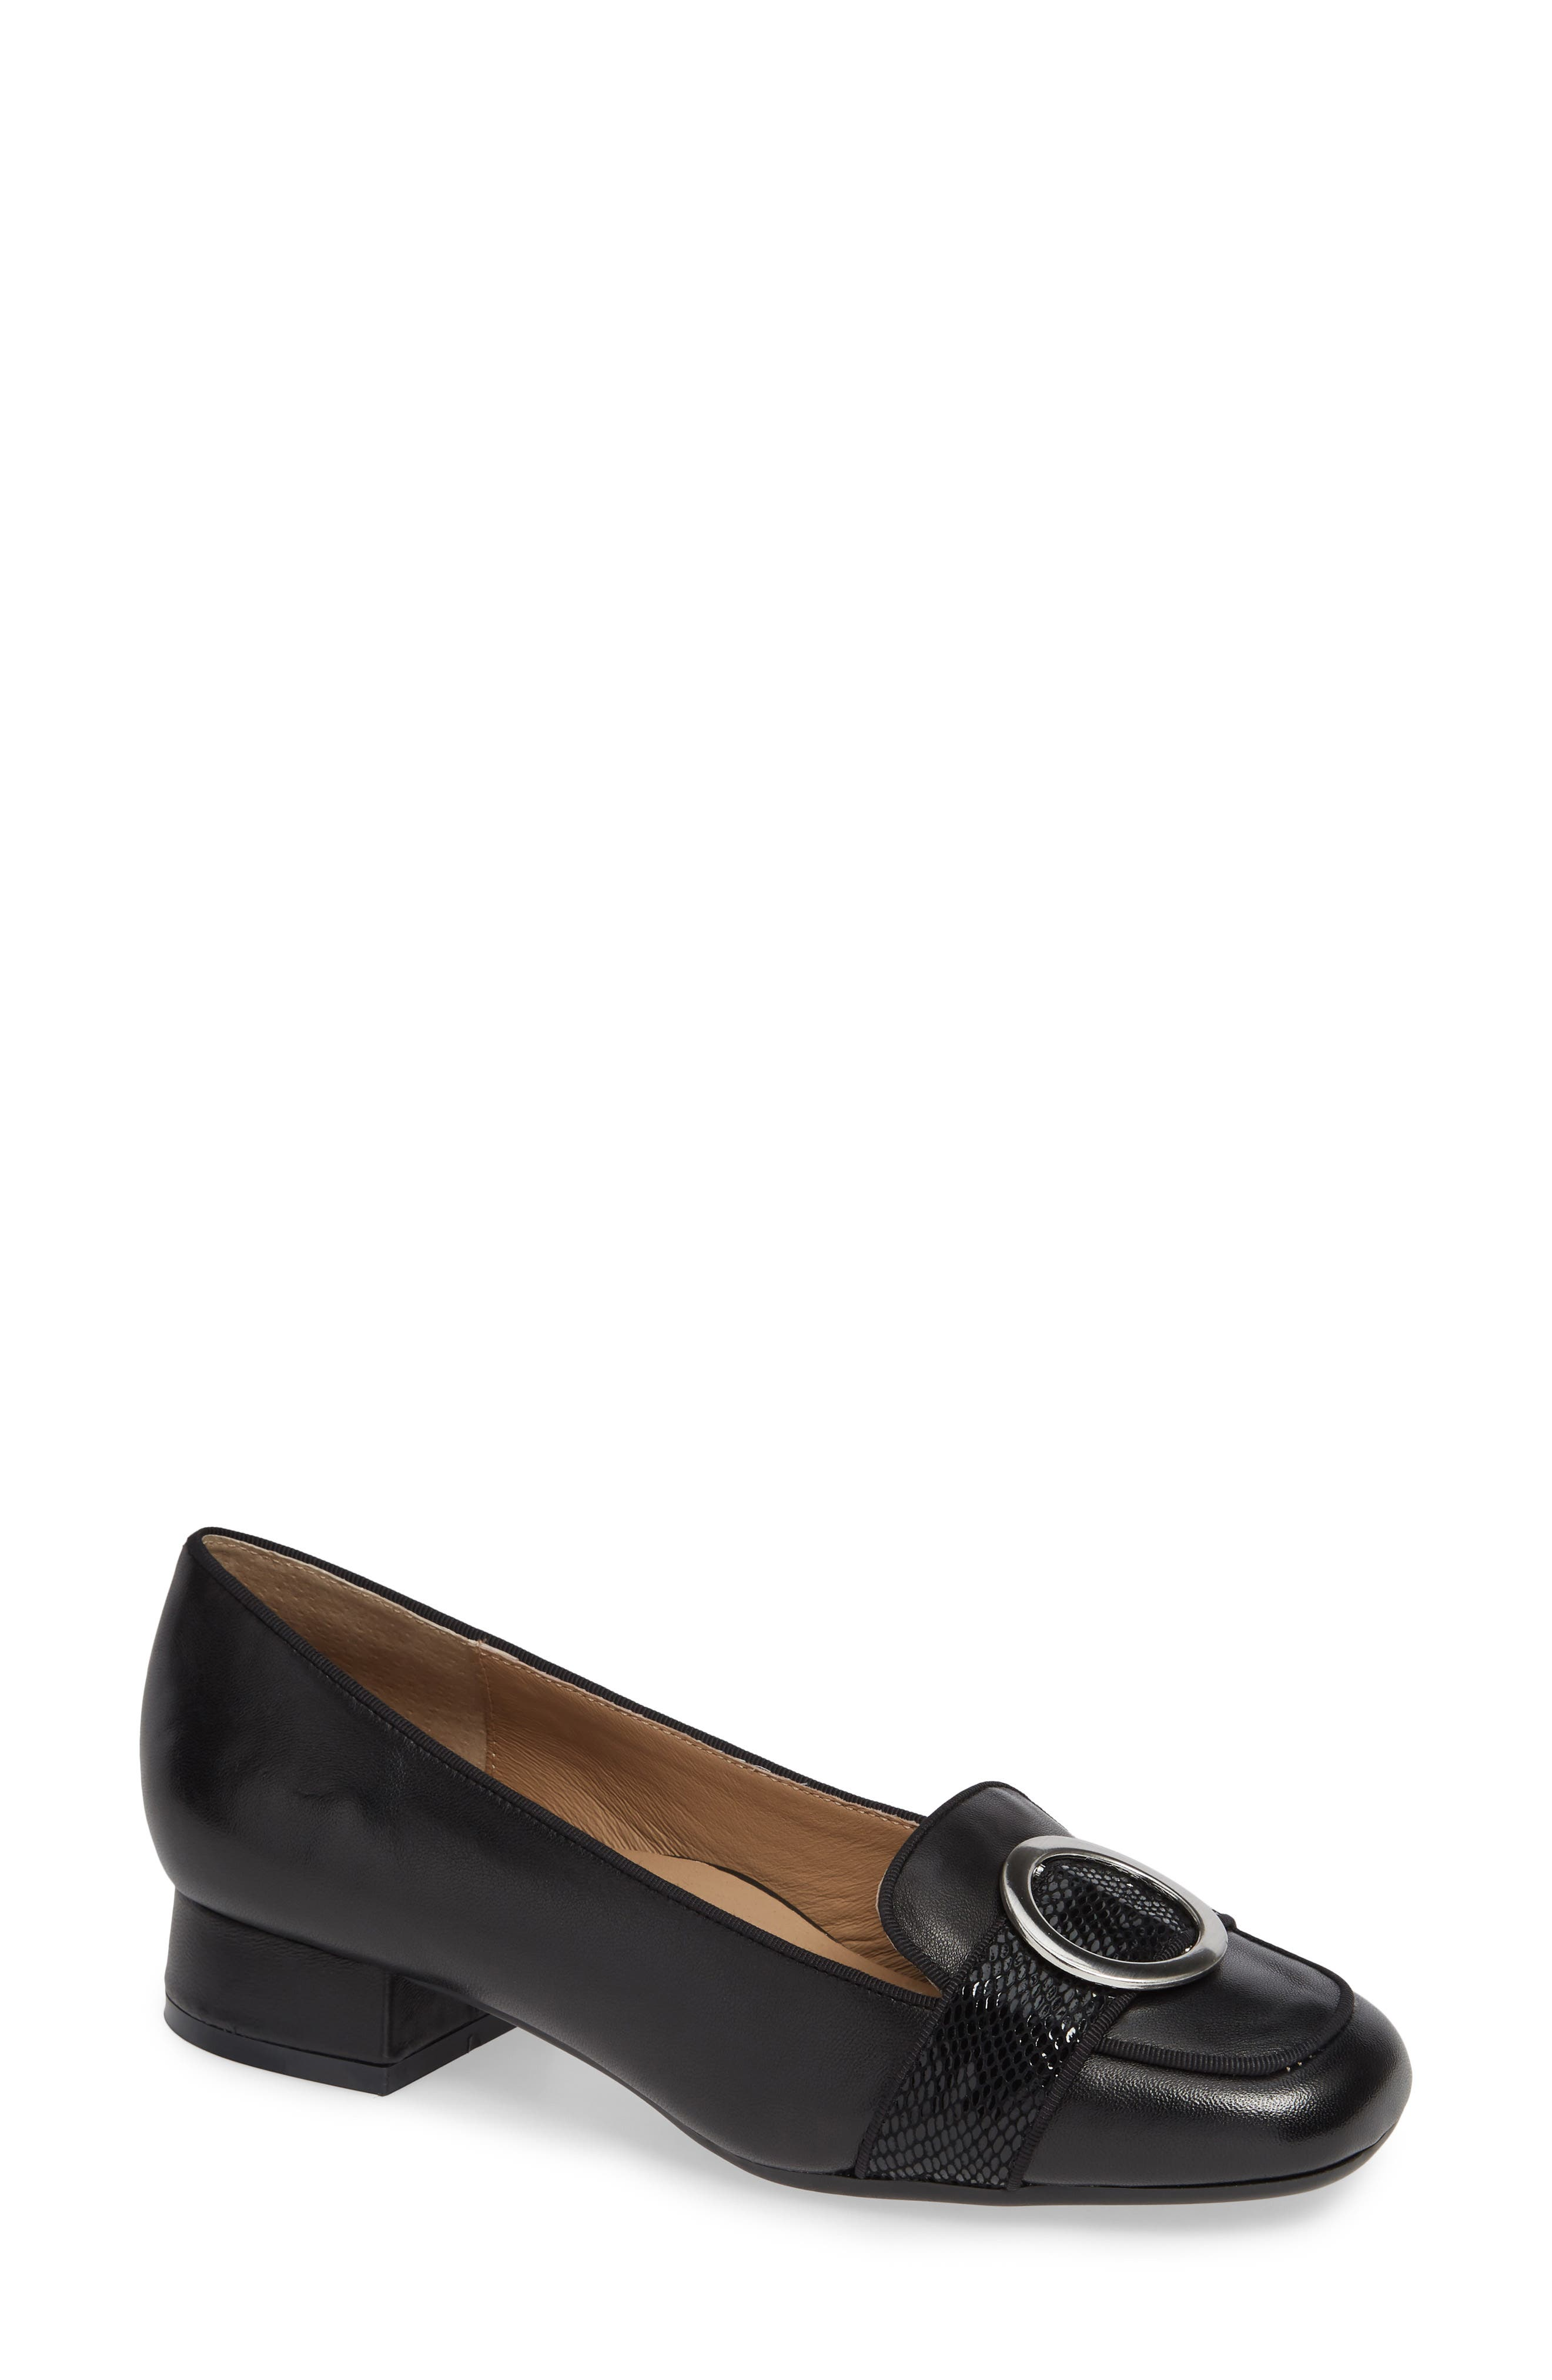 Image of BETTYE MULLER CONCEPTS Garbo Loafer